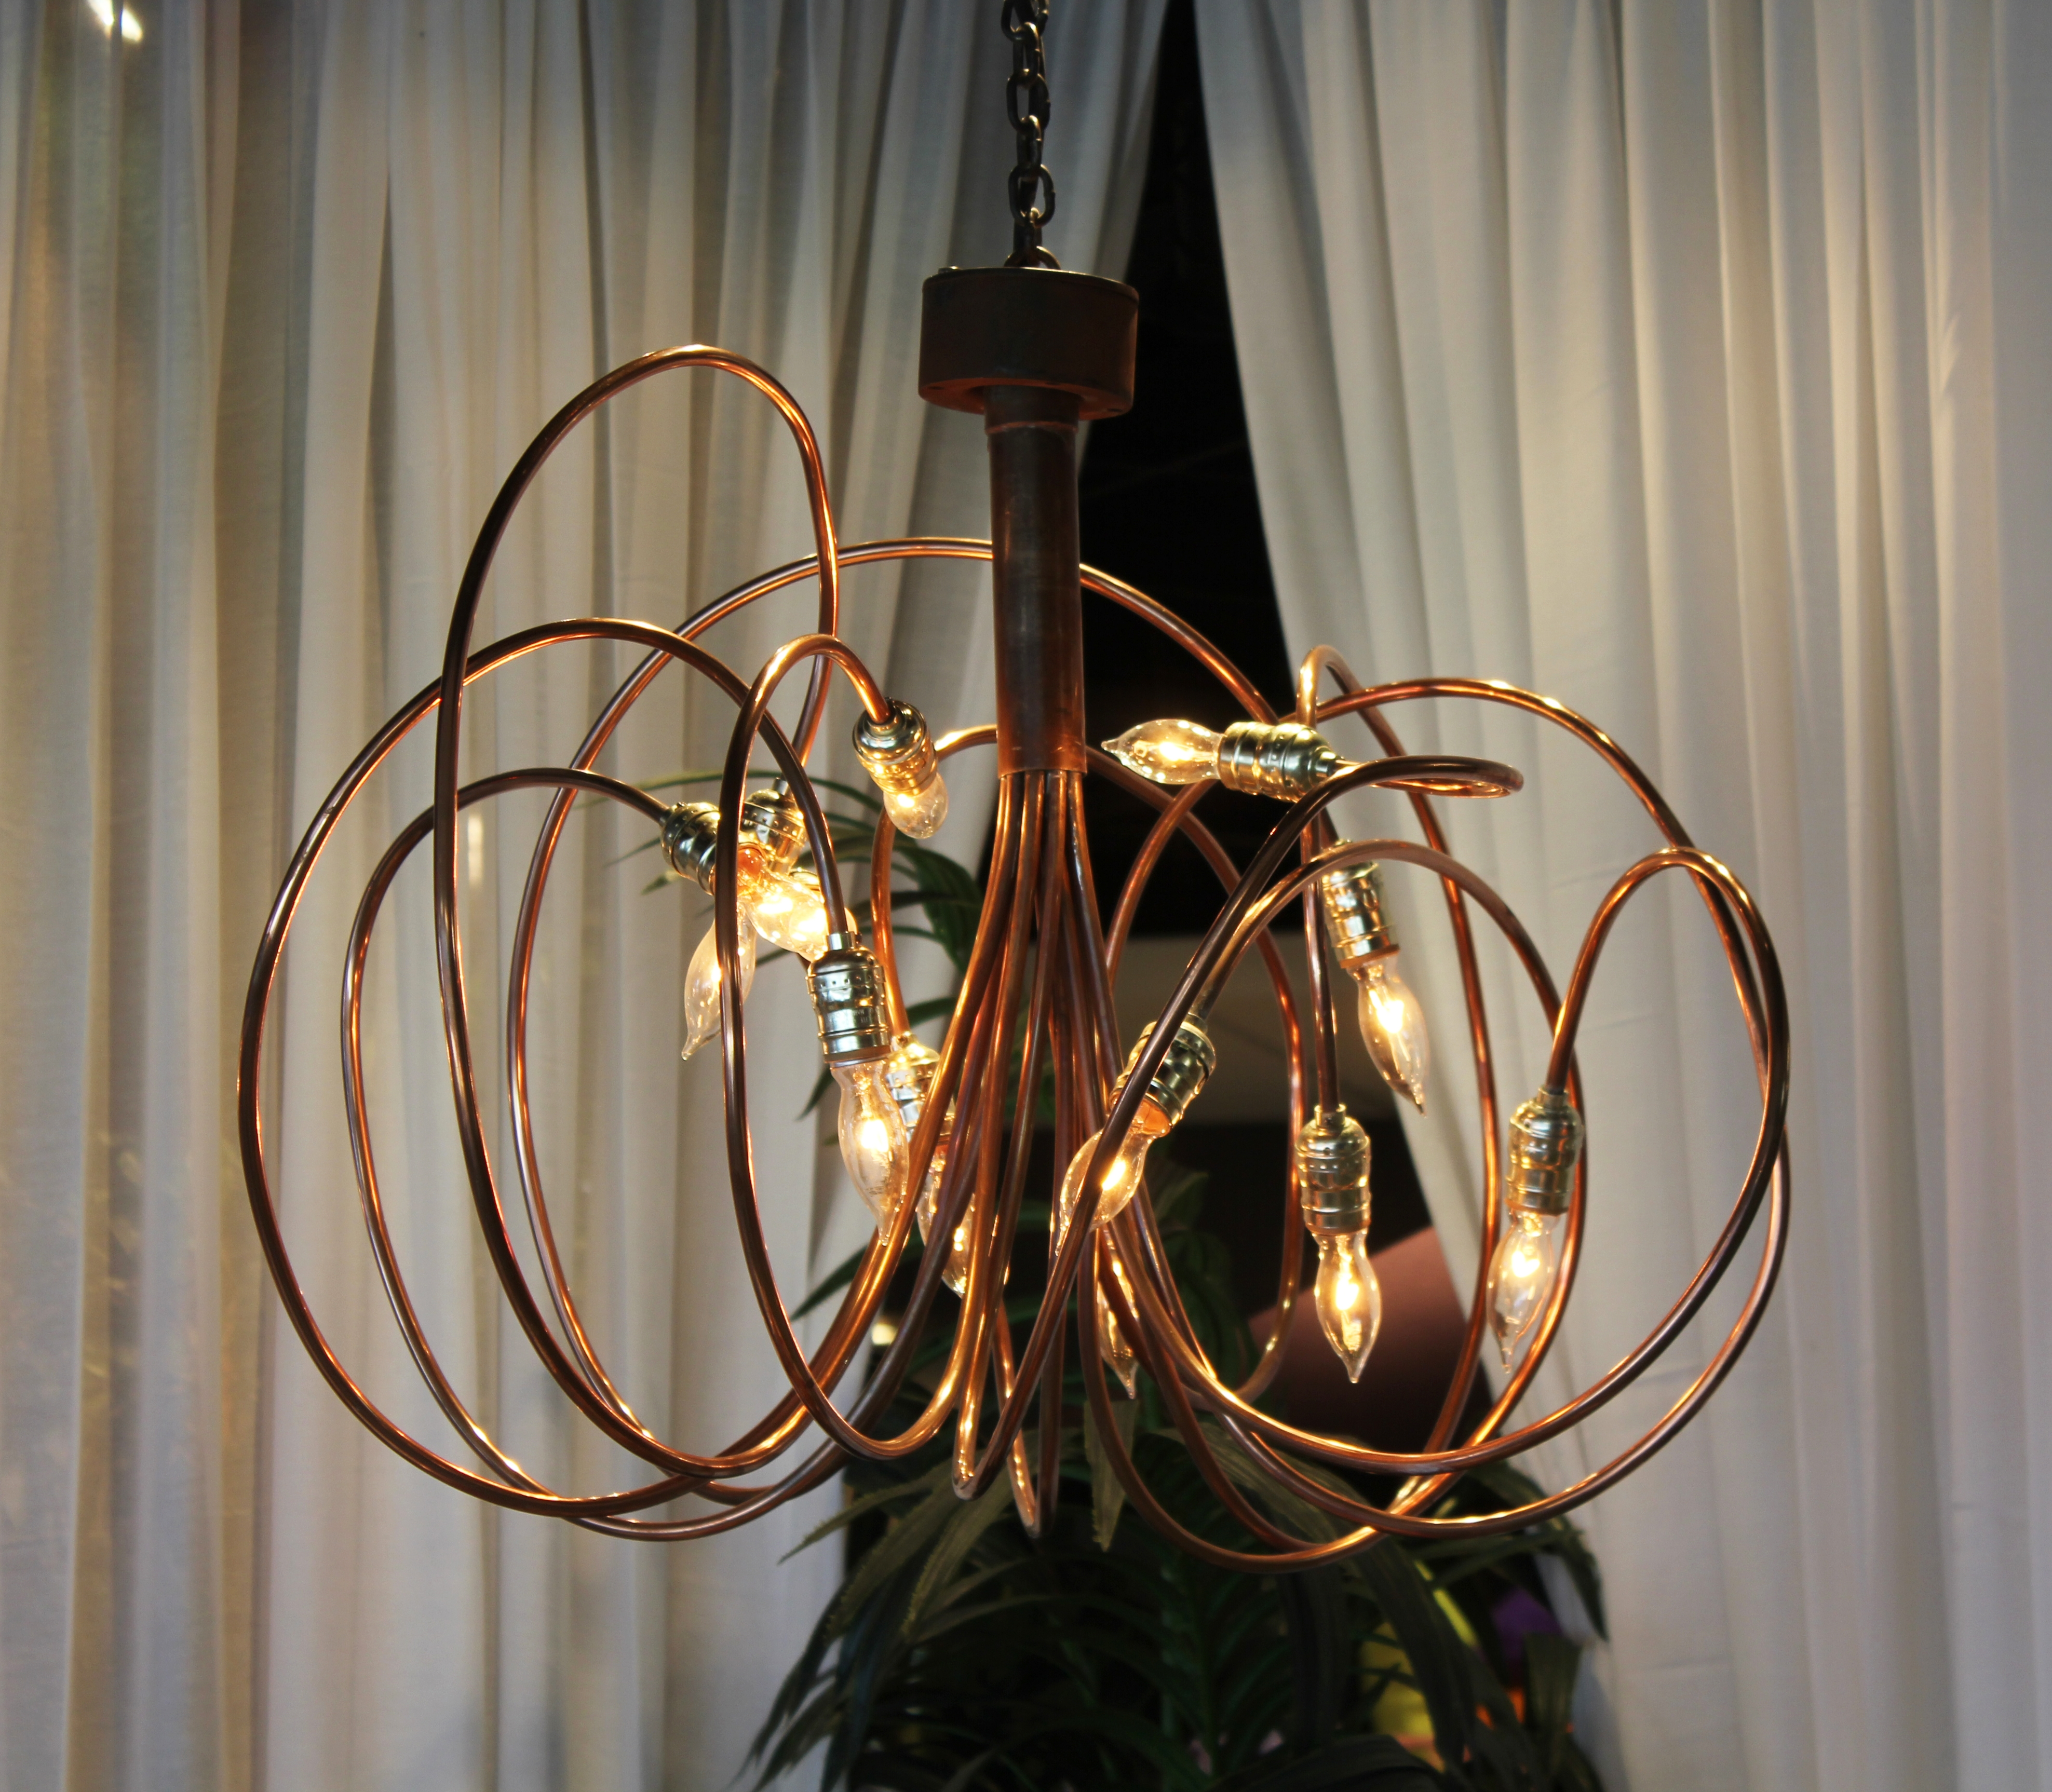 3 Copper Brass Chandelier Town Country Event Rentals Intended For Copper Chandelier (#1 of 12)